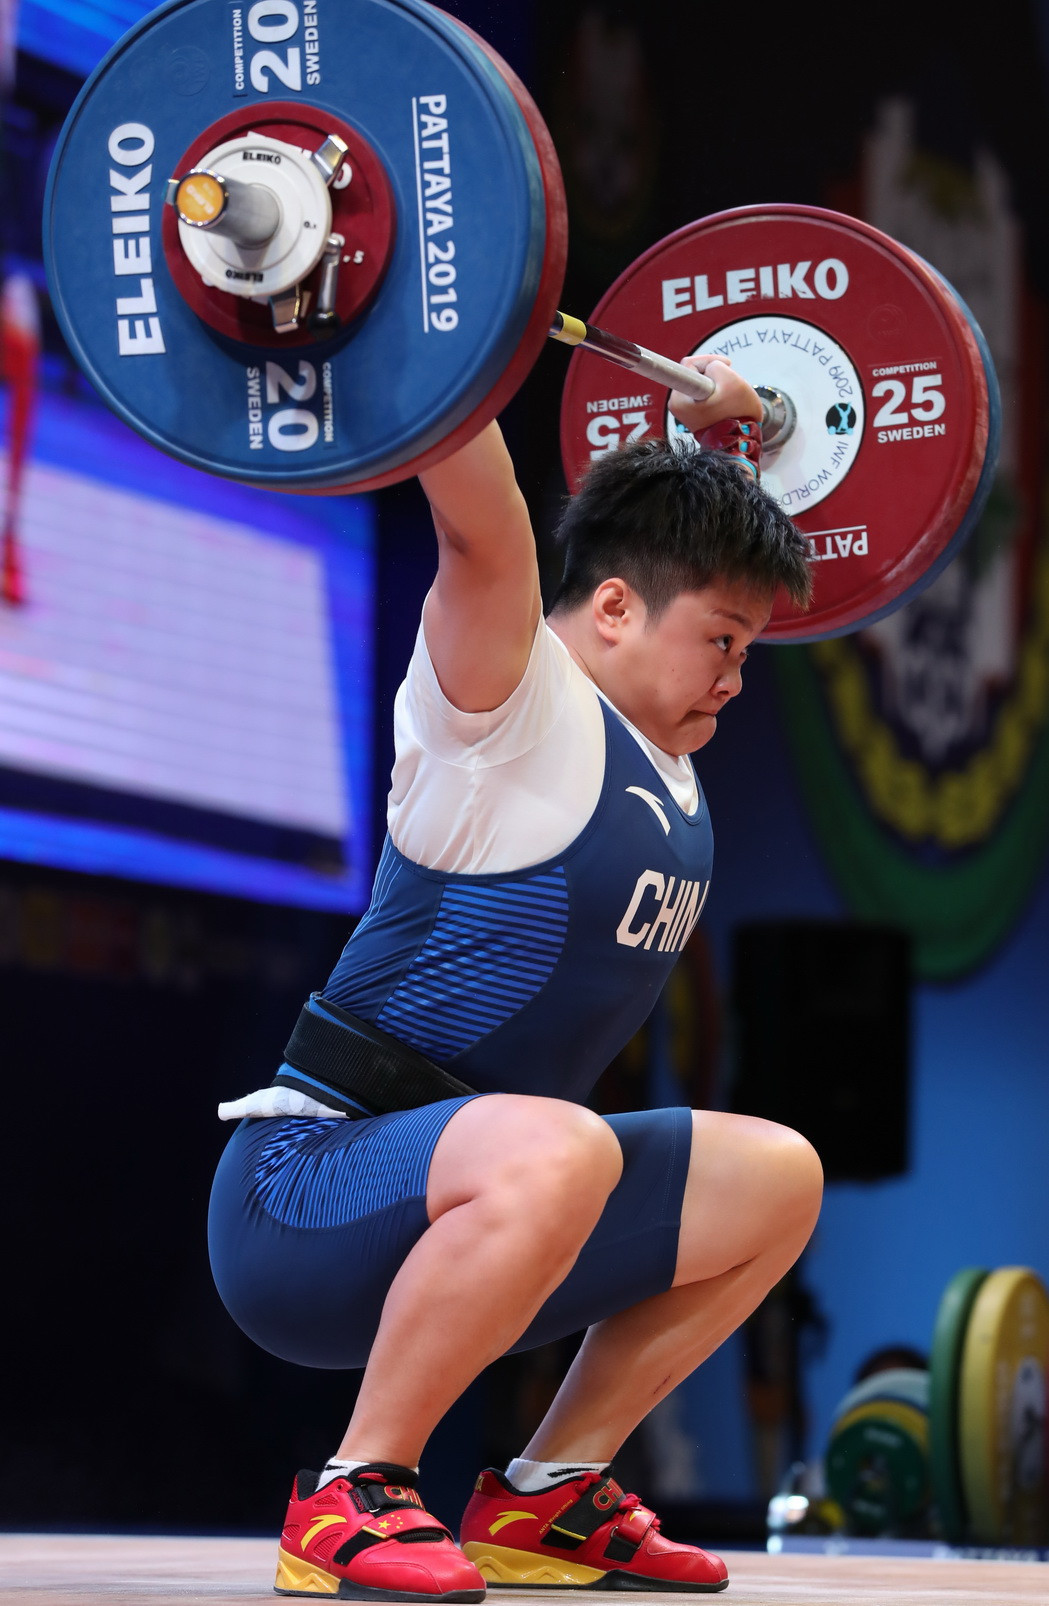 Wang had jumped up two bodyweight categories from last year's triumph in the 76kg competition ©IWF